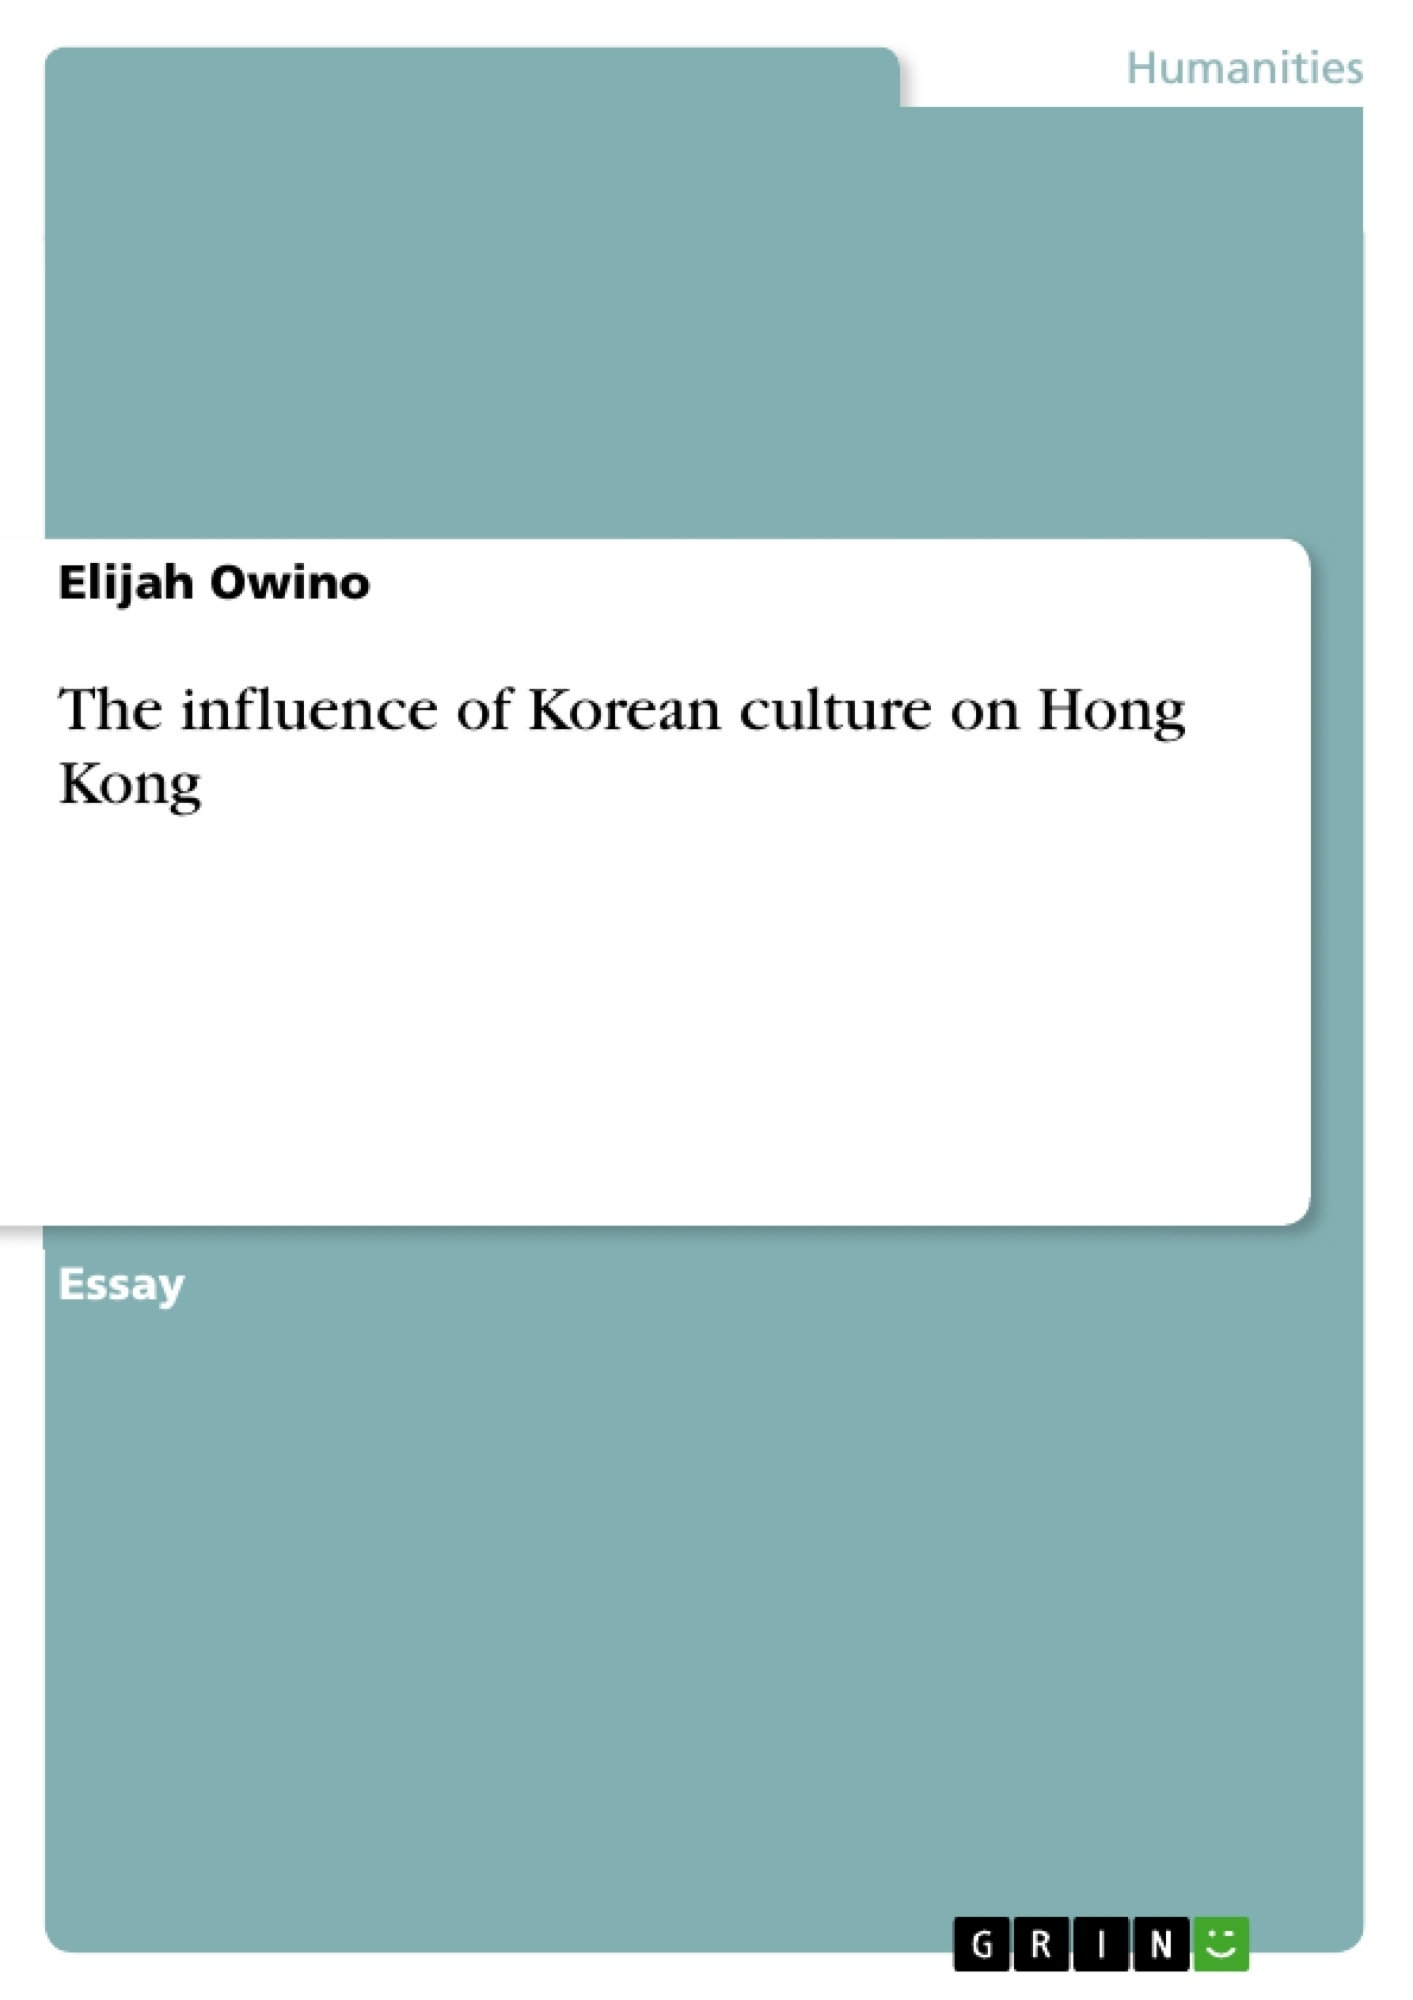 GRIN - The influence of Korean culture on Hong Kong